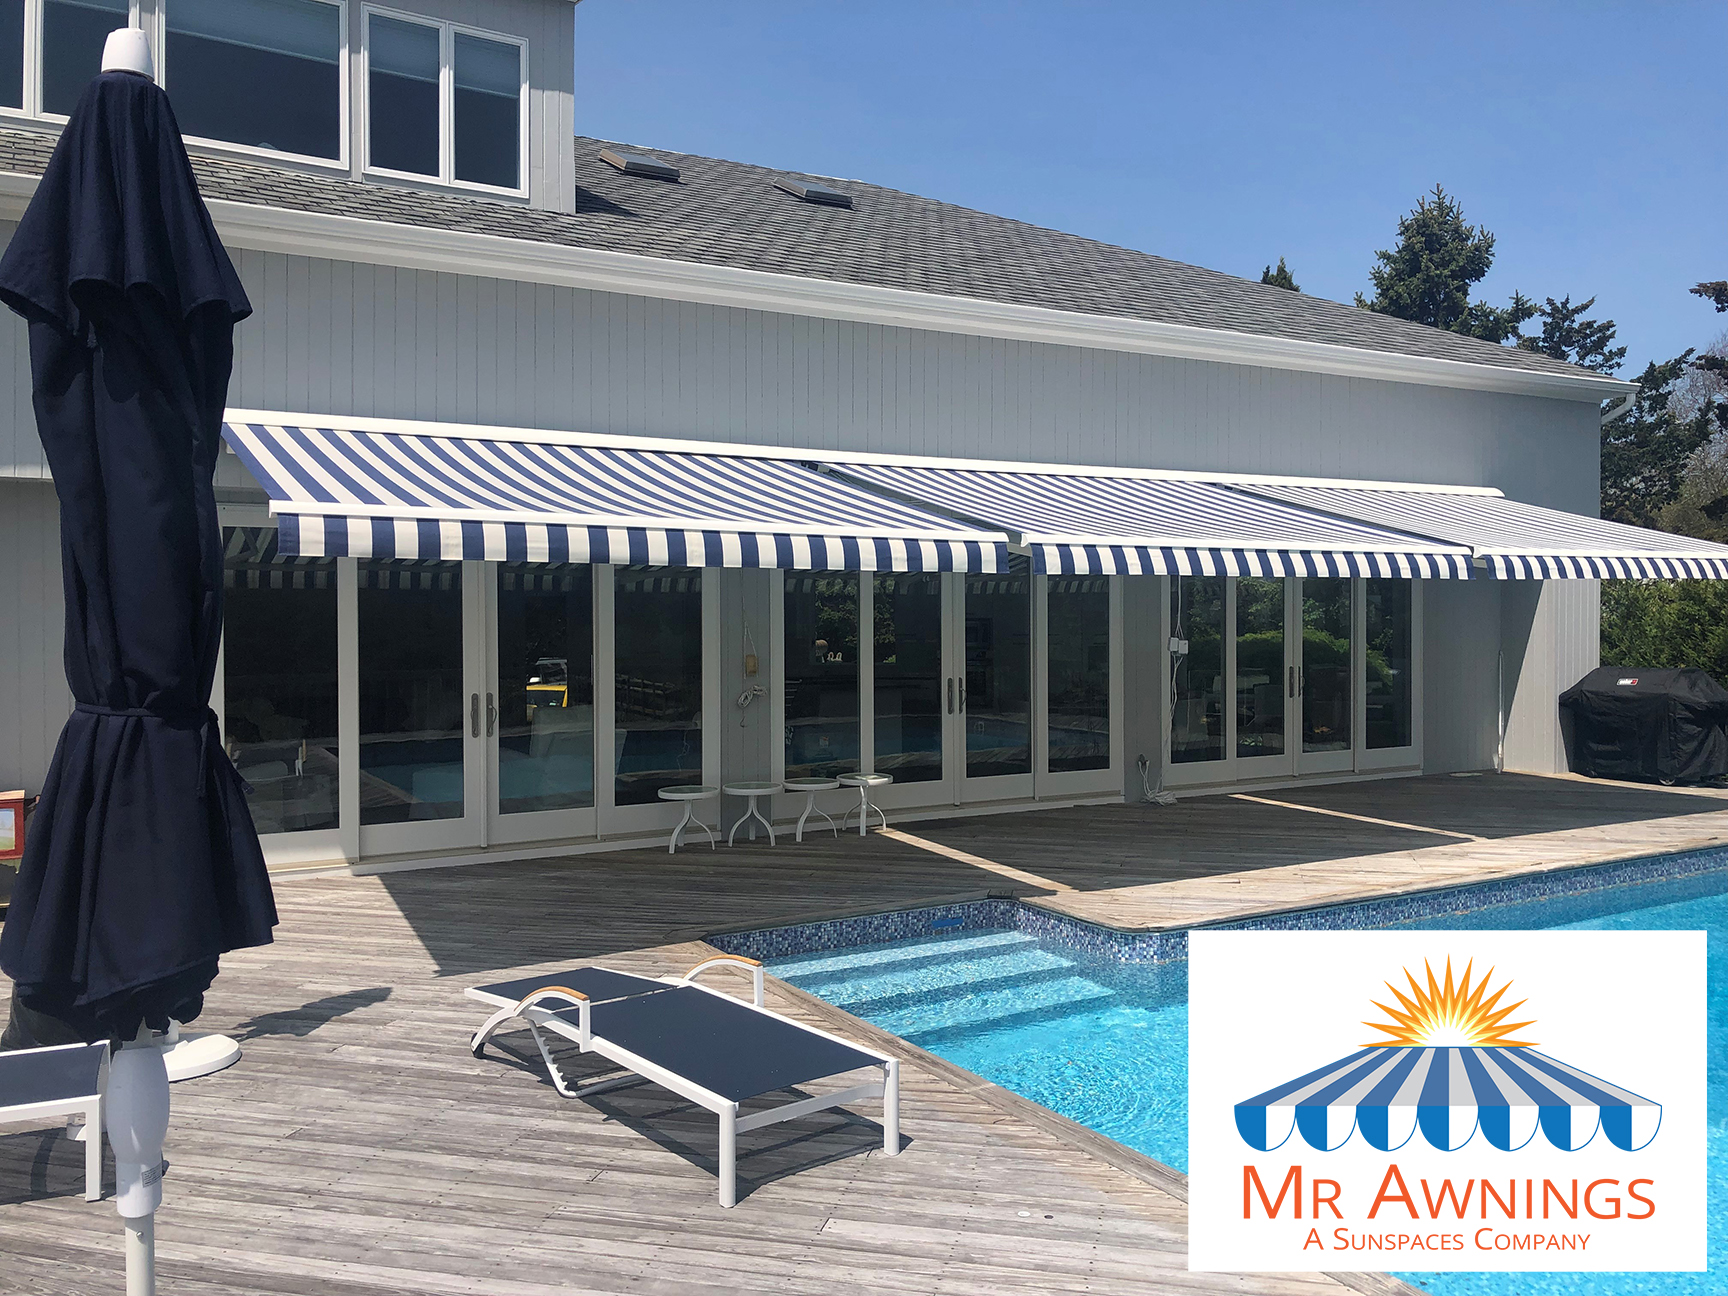 Sunesta retractable awnings from Mr Awning